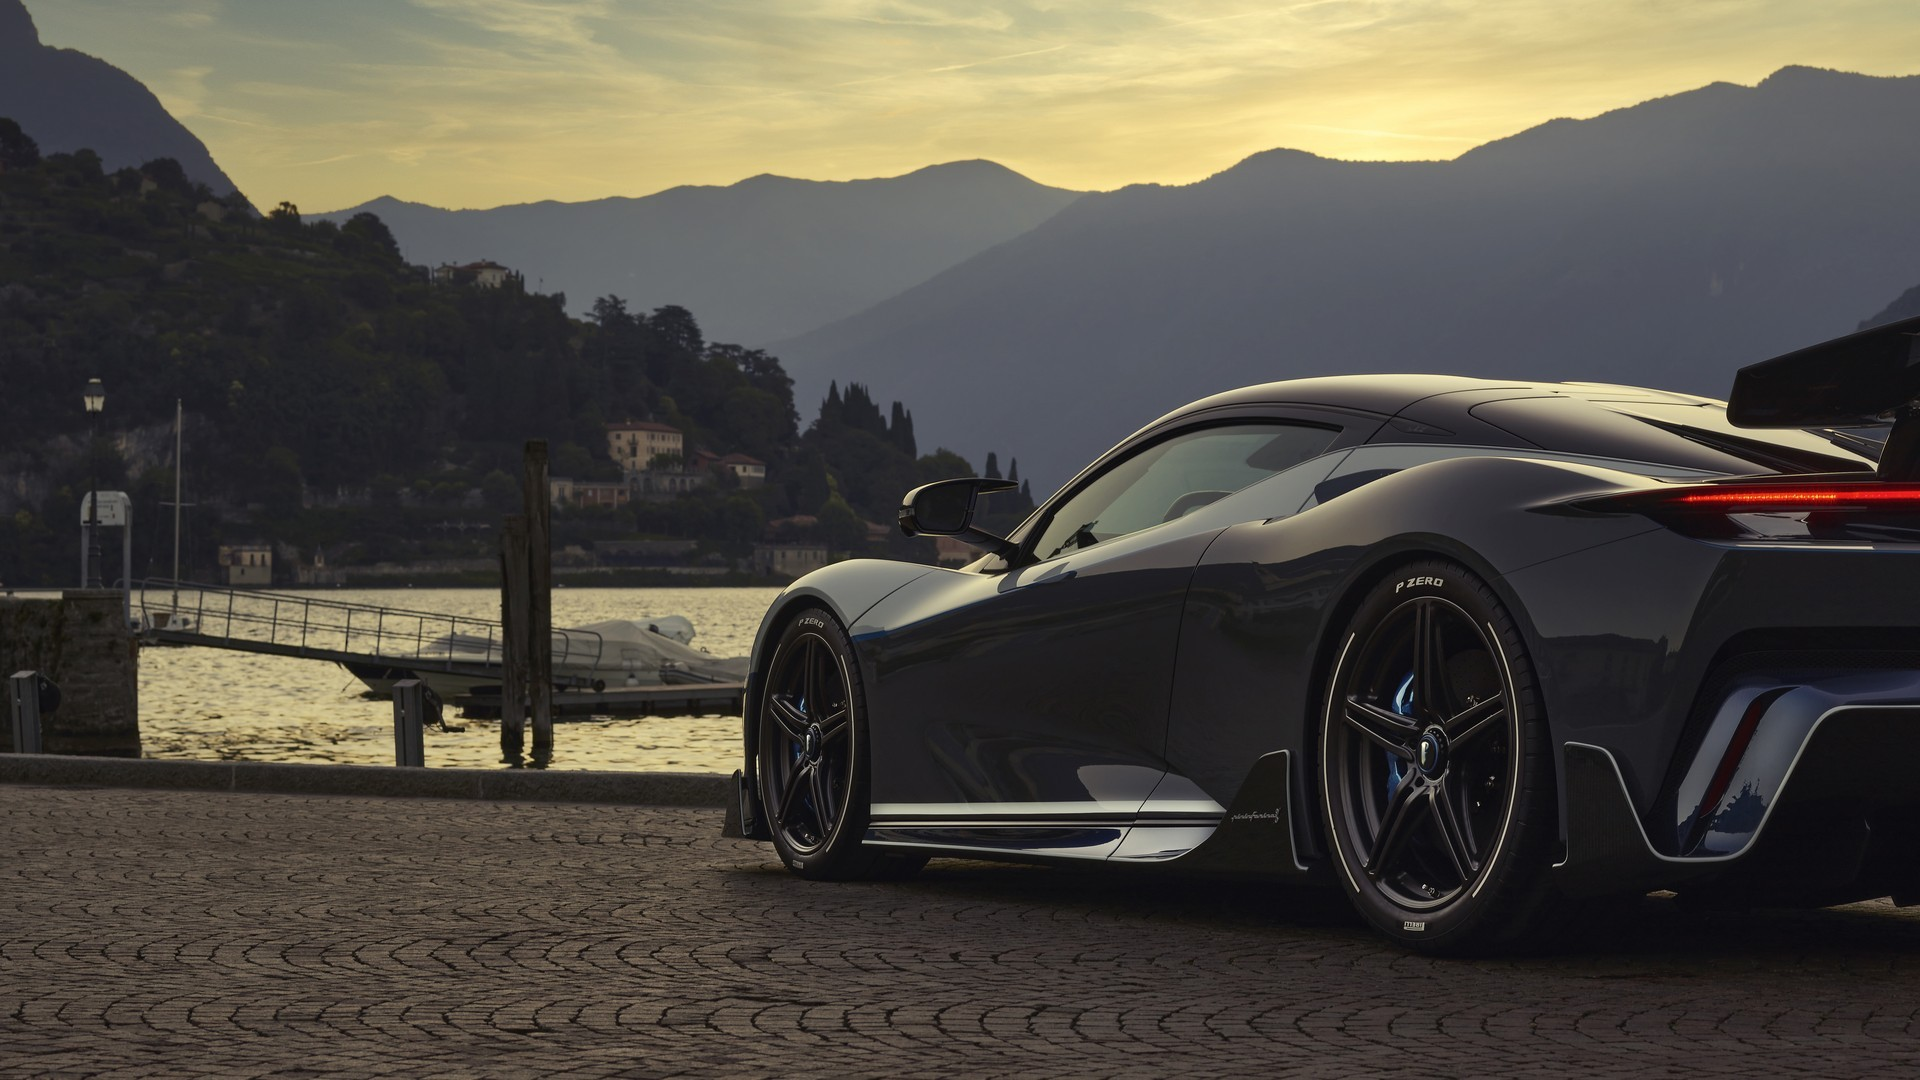 2018 - [Pininfarina] PF0 Concept / Battista  - Page 2 Pininfarina-promises-battista-anniversario-making-of-during-concours-virtual_1